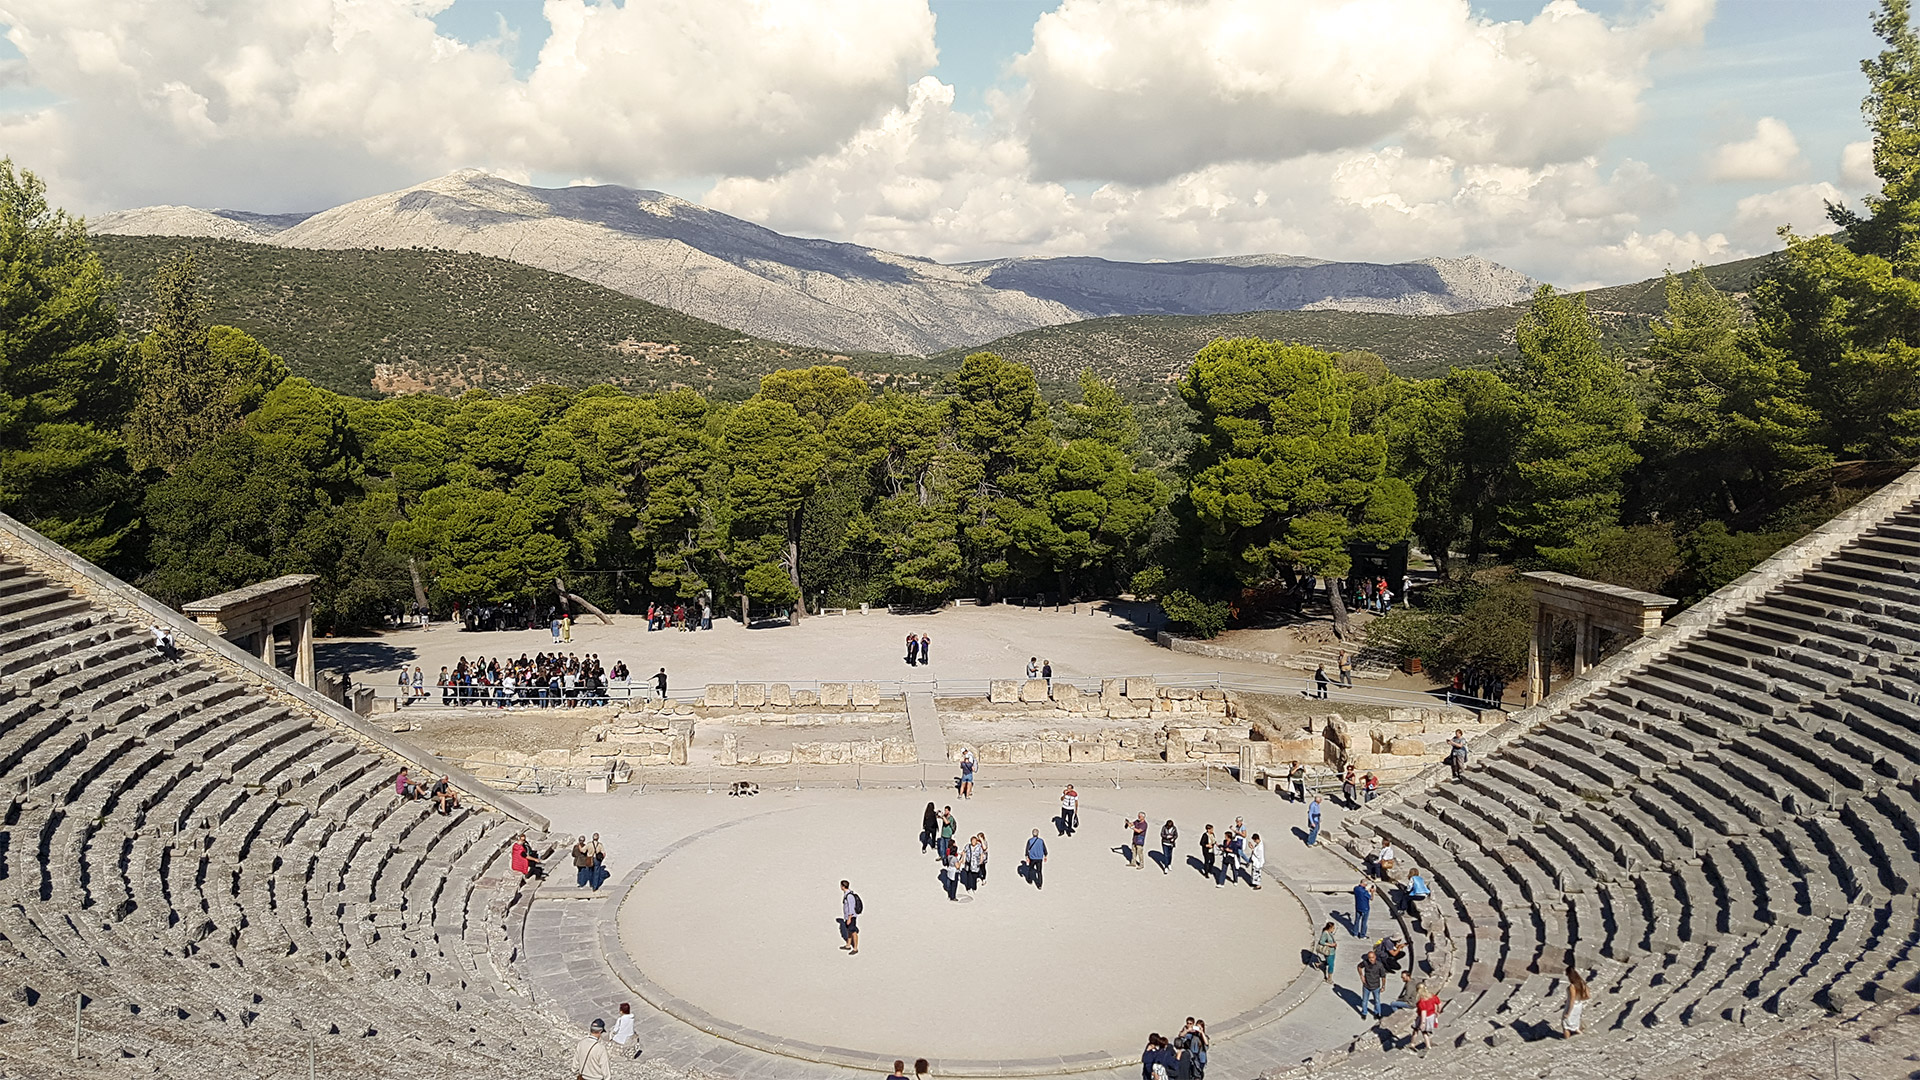 Built in the sanctuary's heyday, in the 4th-century BC during the Hellenistic period, the theatre originally sat 6,000 spectators